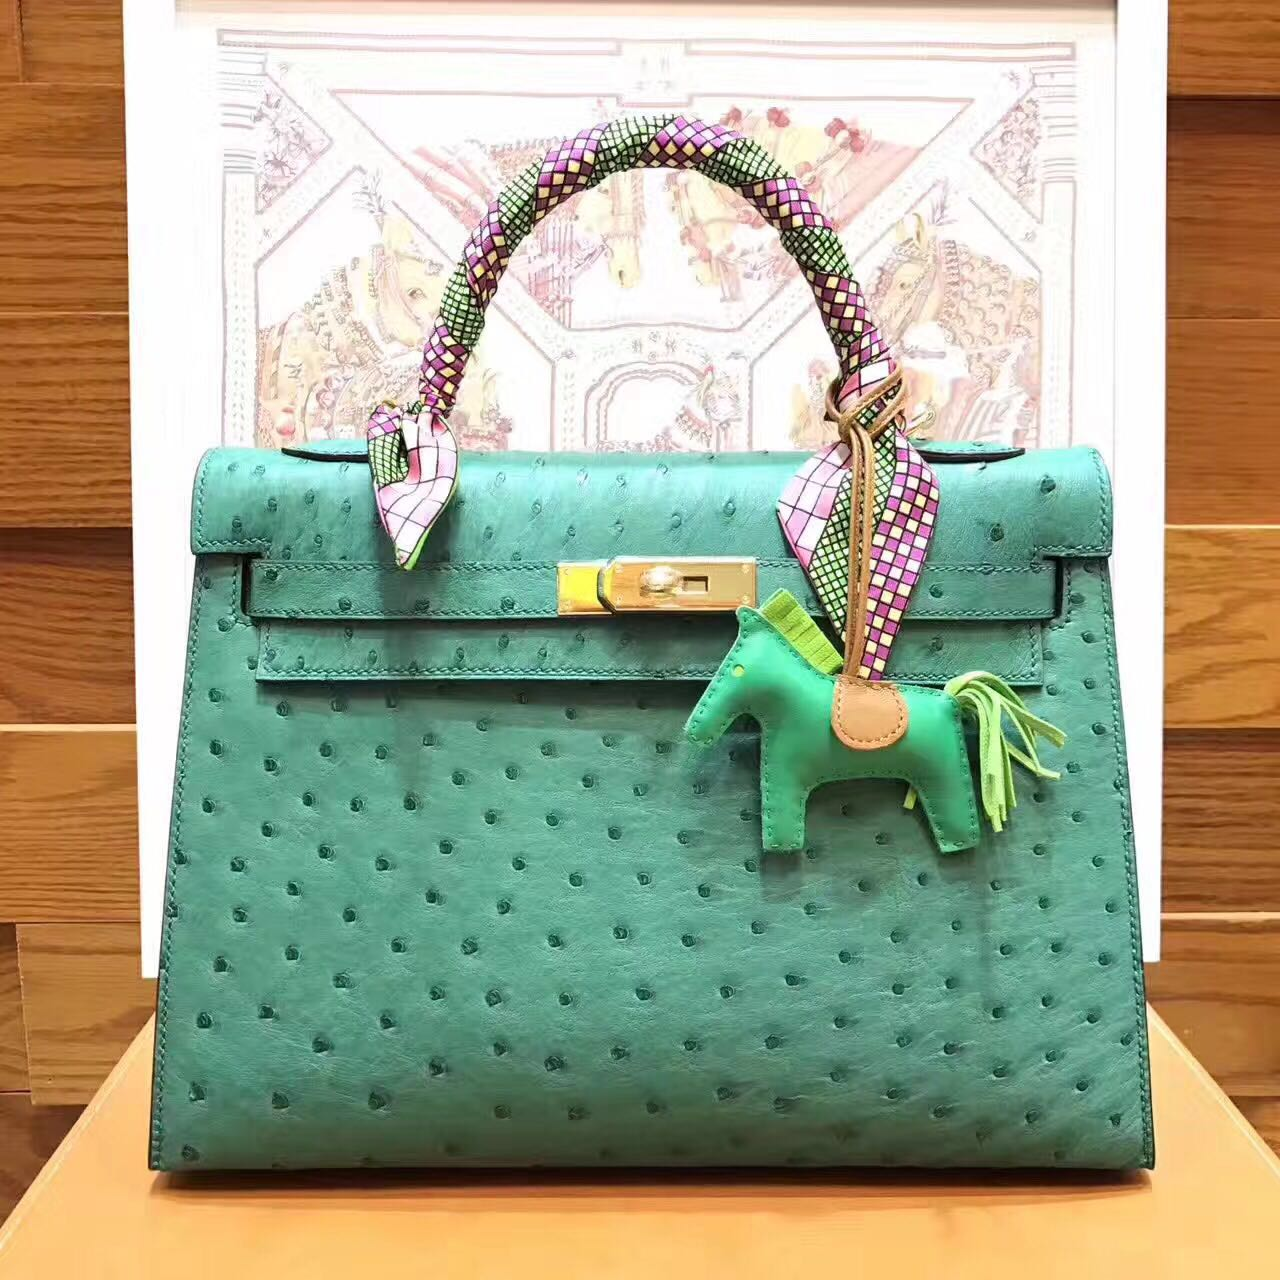 HERMES Ostrich Leather Toto Bag 1788 Green